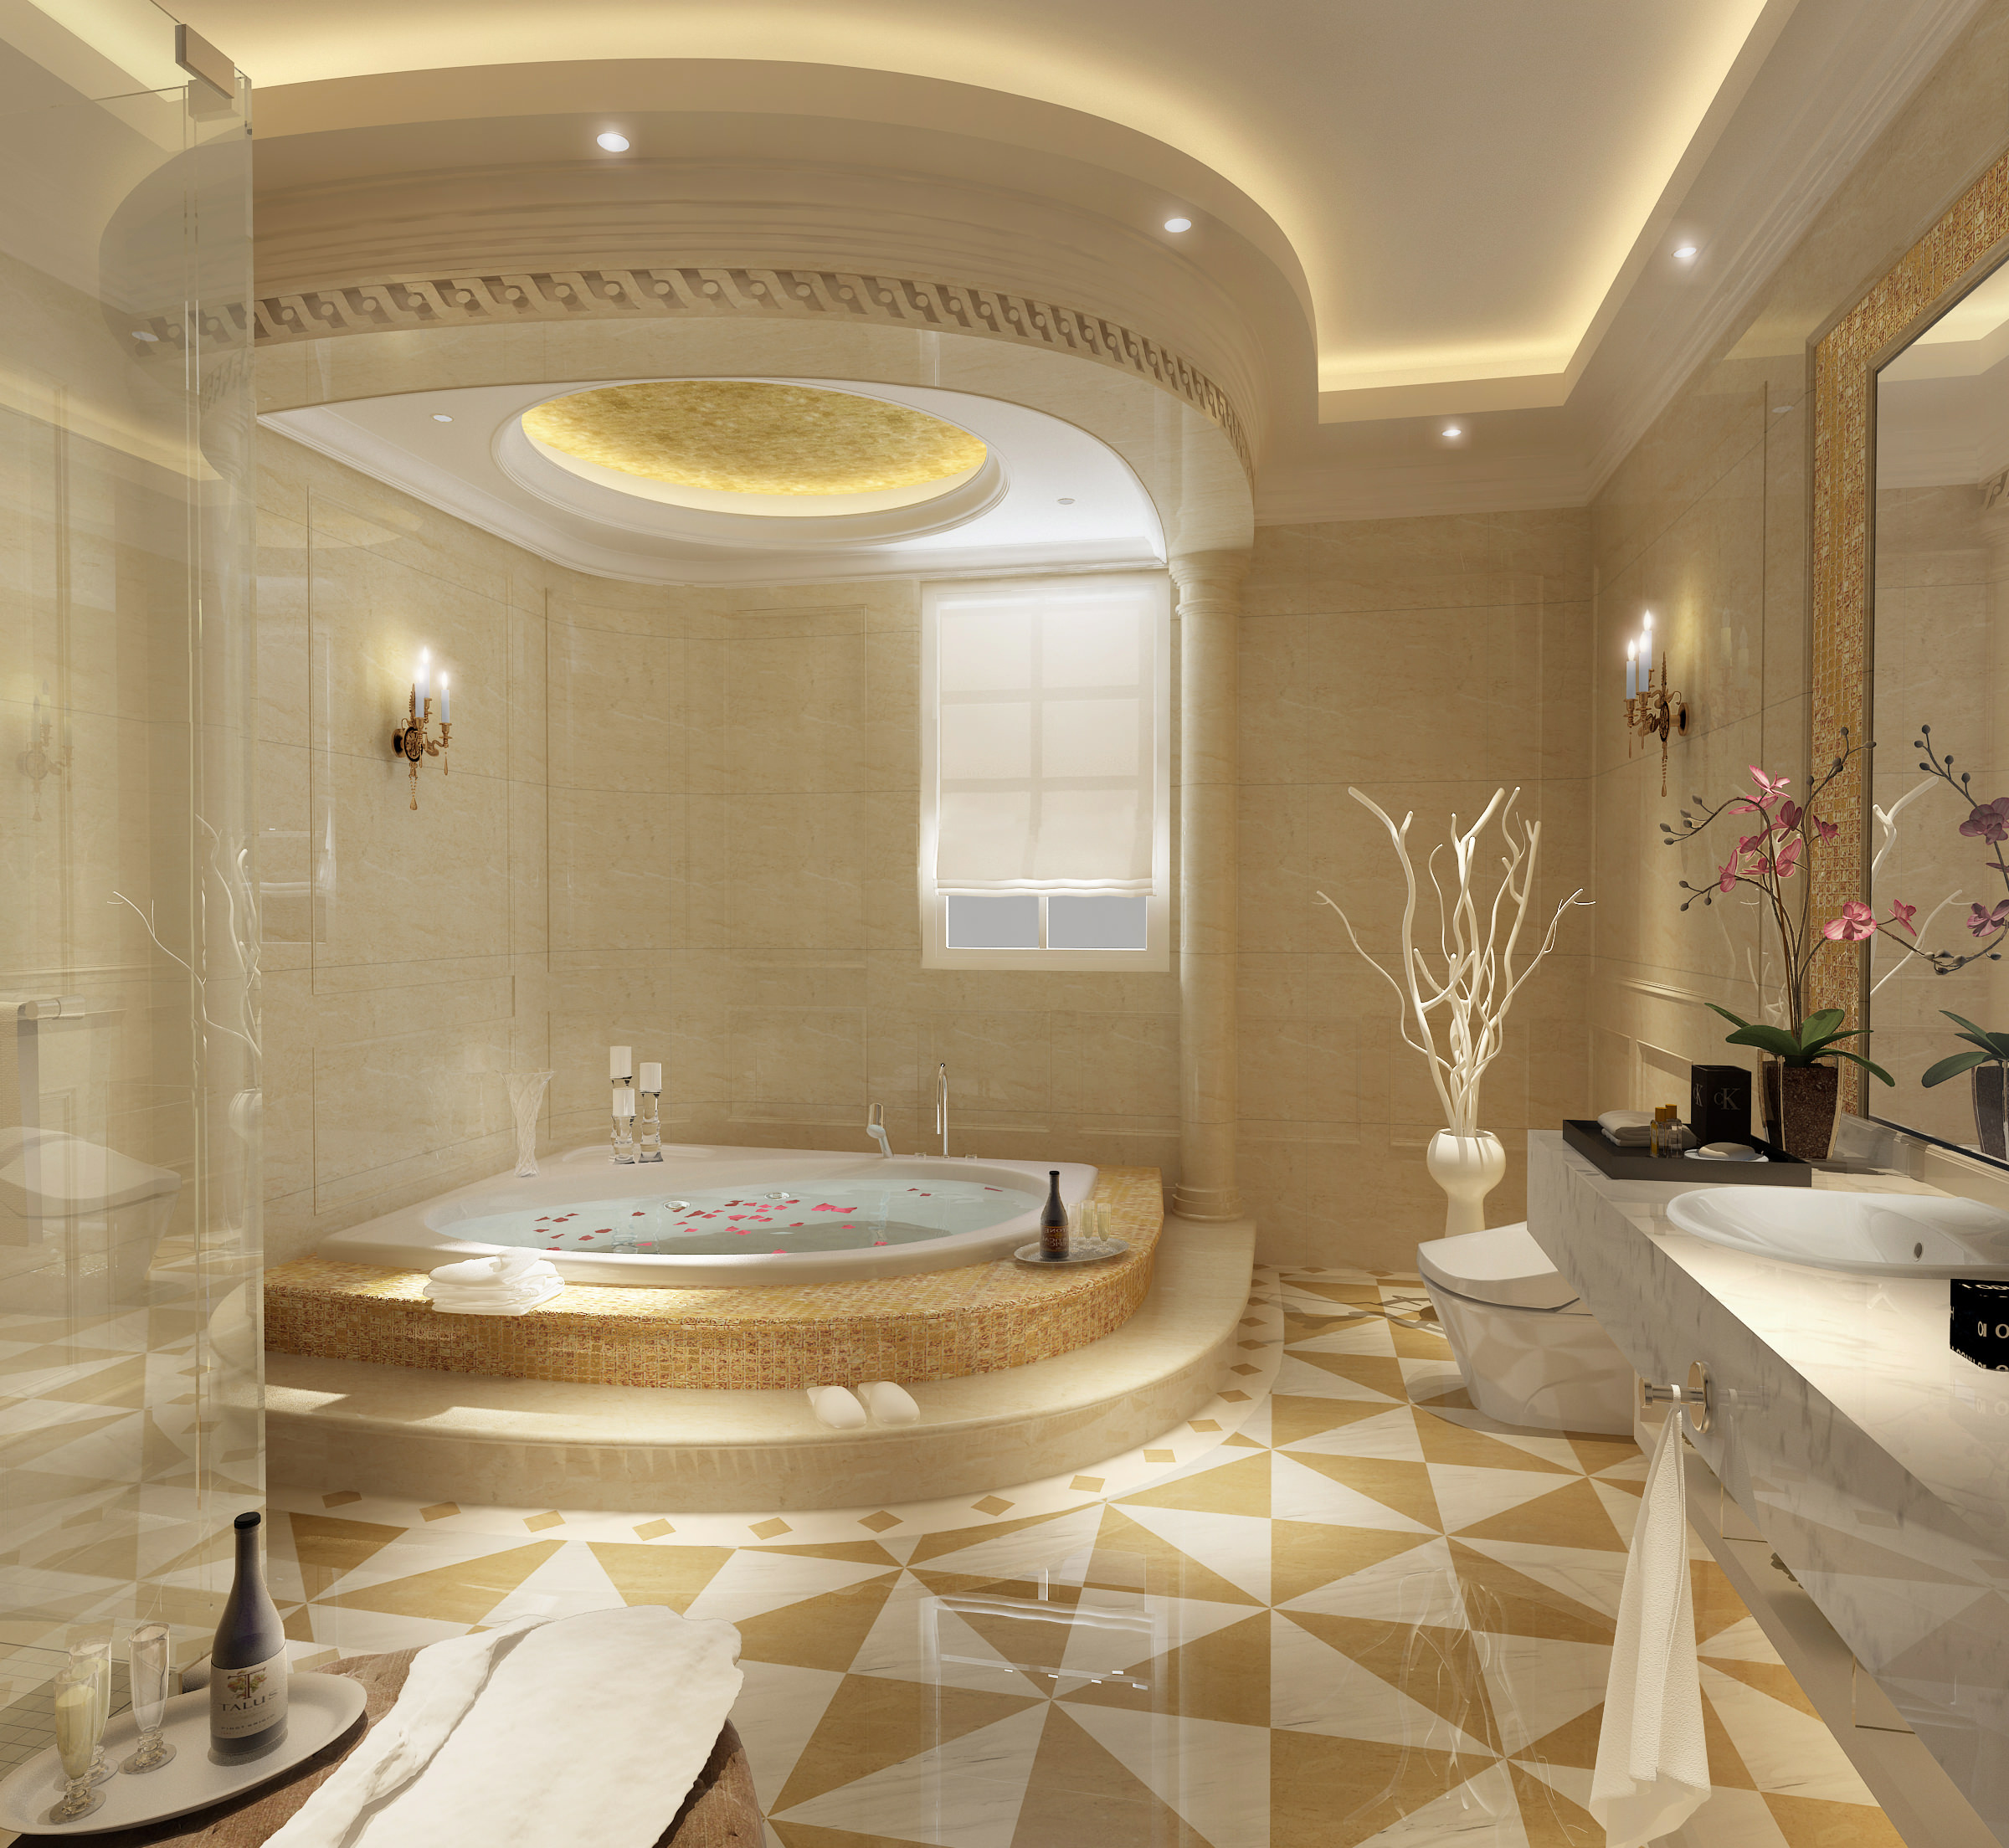 Luxury bathroom 3d model max Most beautiful small bathrooms